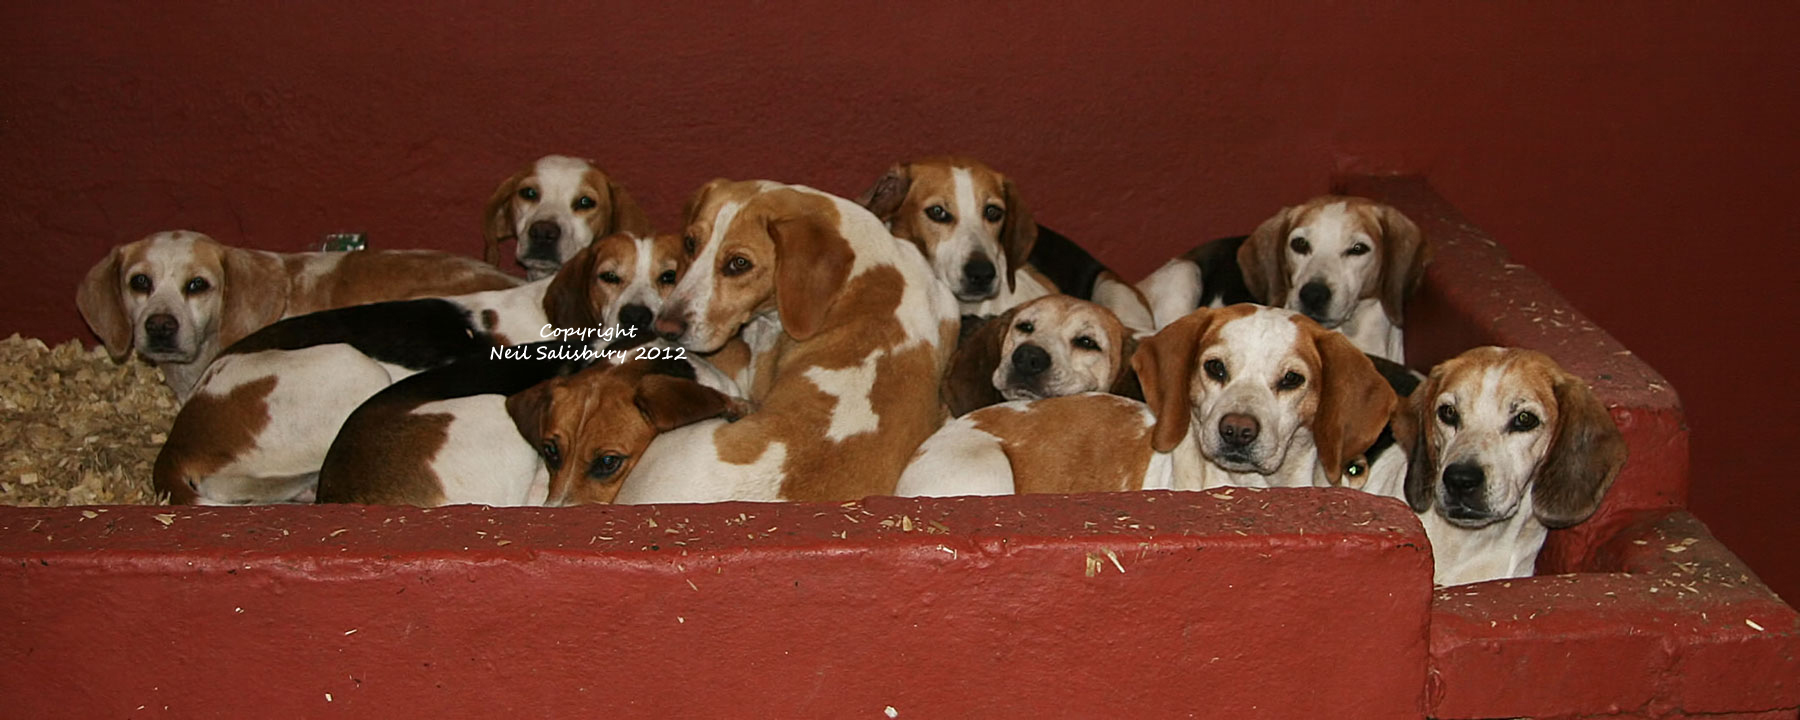 Beagle photography by Betty Fold Gallery of Hawkshead in the English Lake District